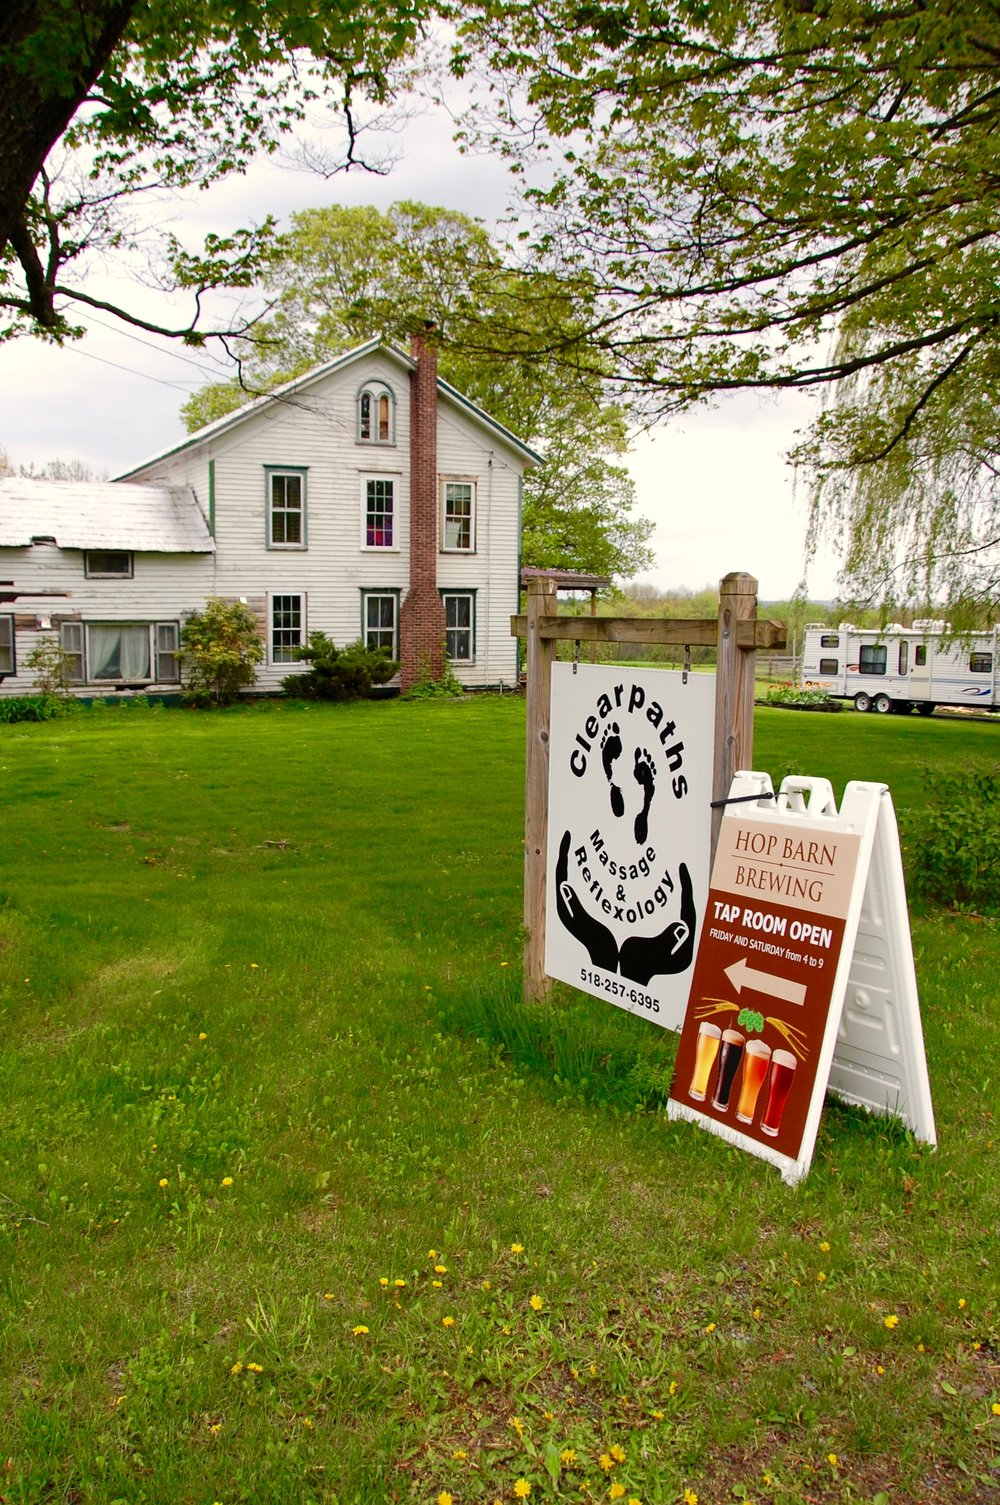 Hop Barn's front lawn, with side-by-side signage for another in-home business, Clear Paths Massage and Reflexology.